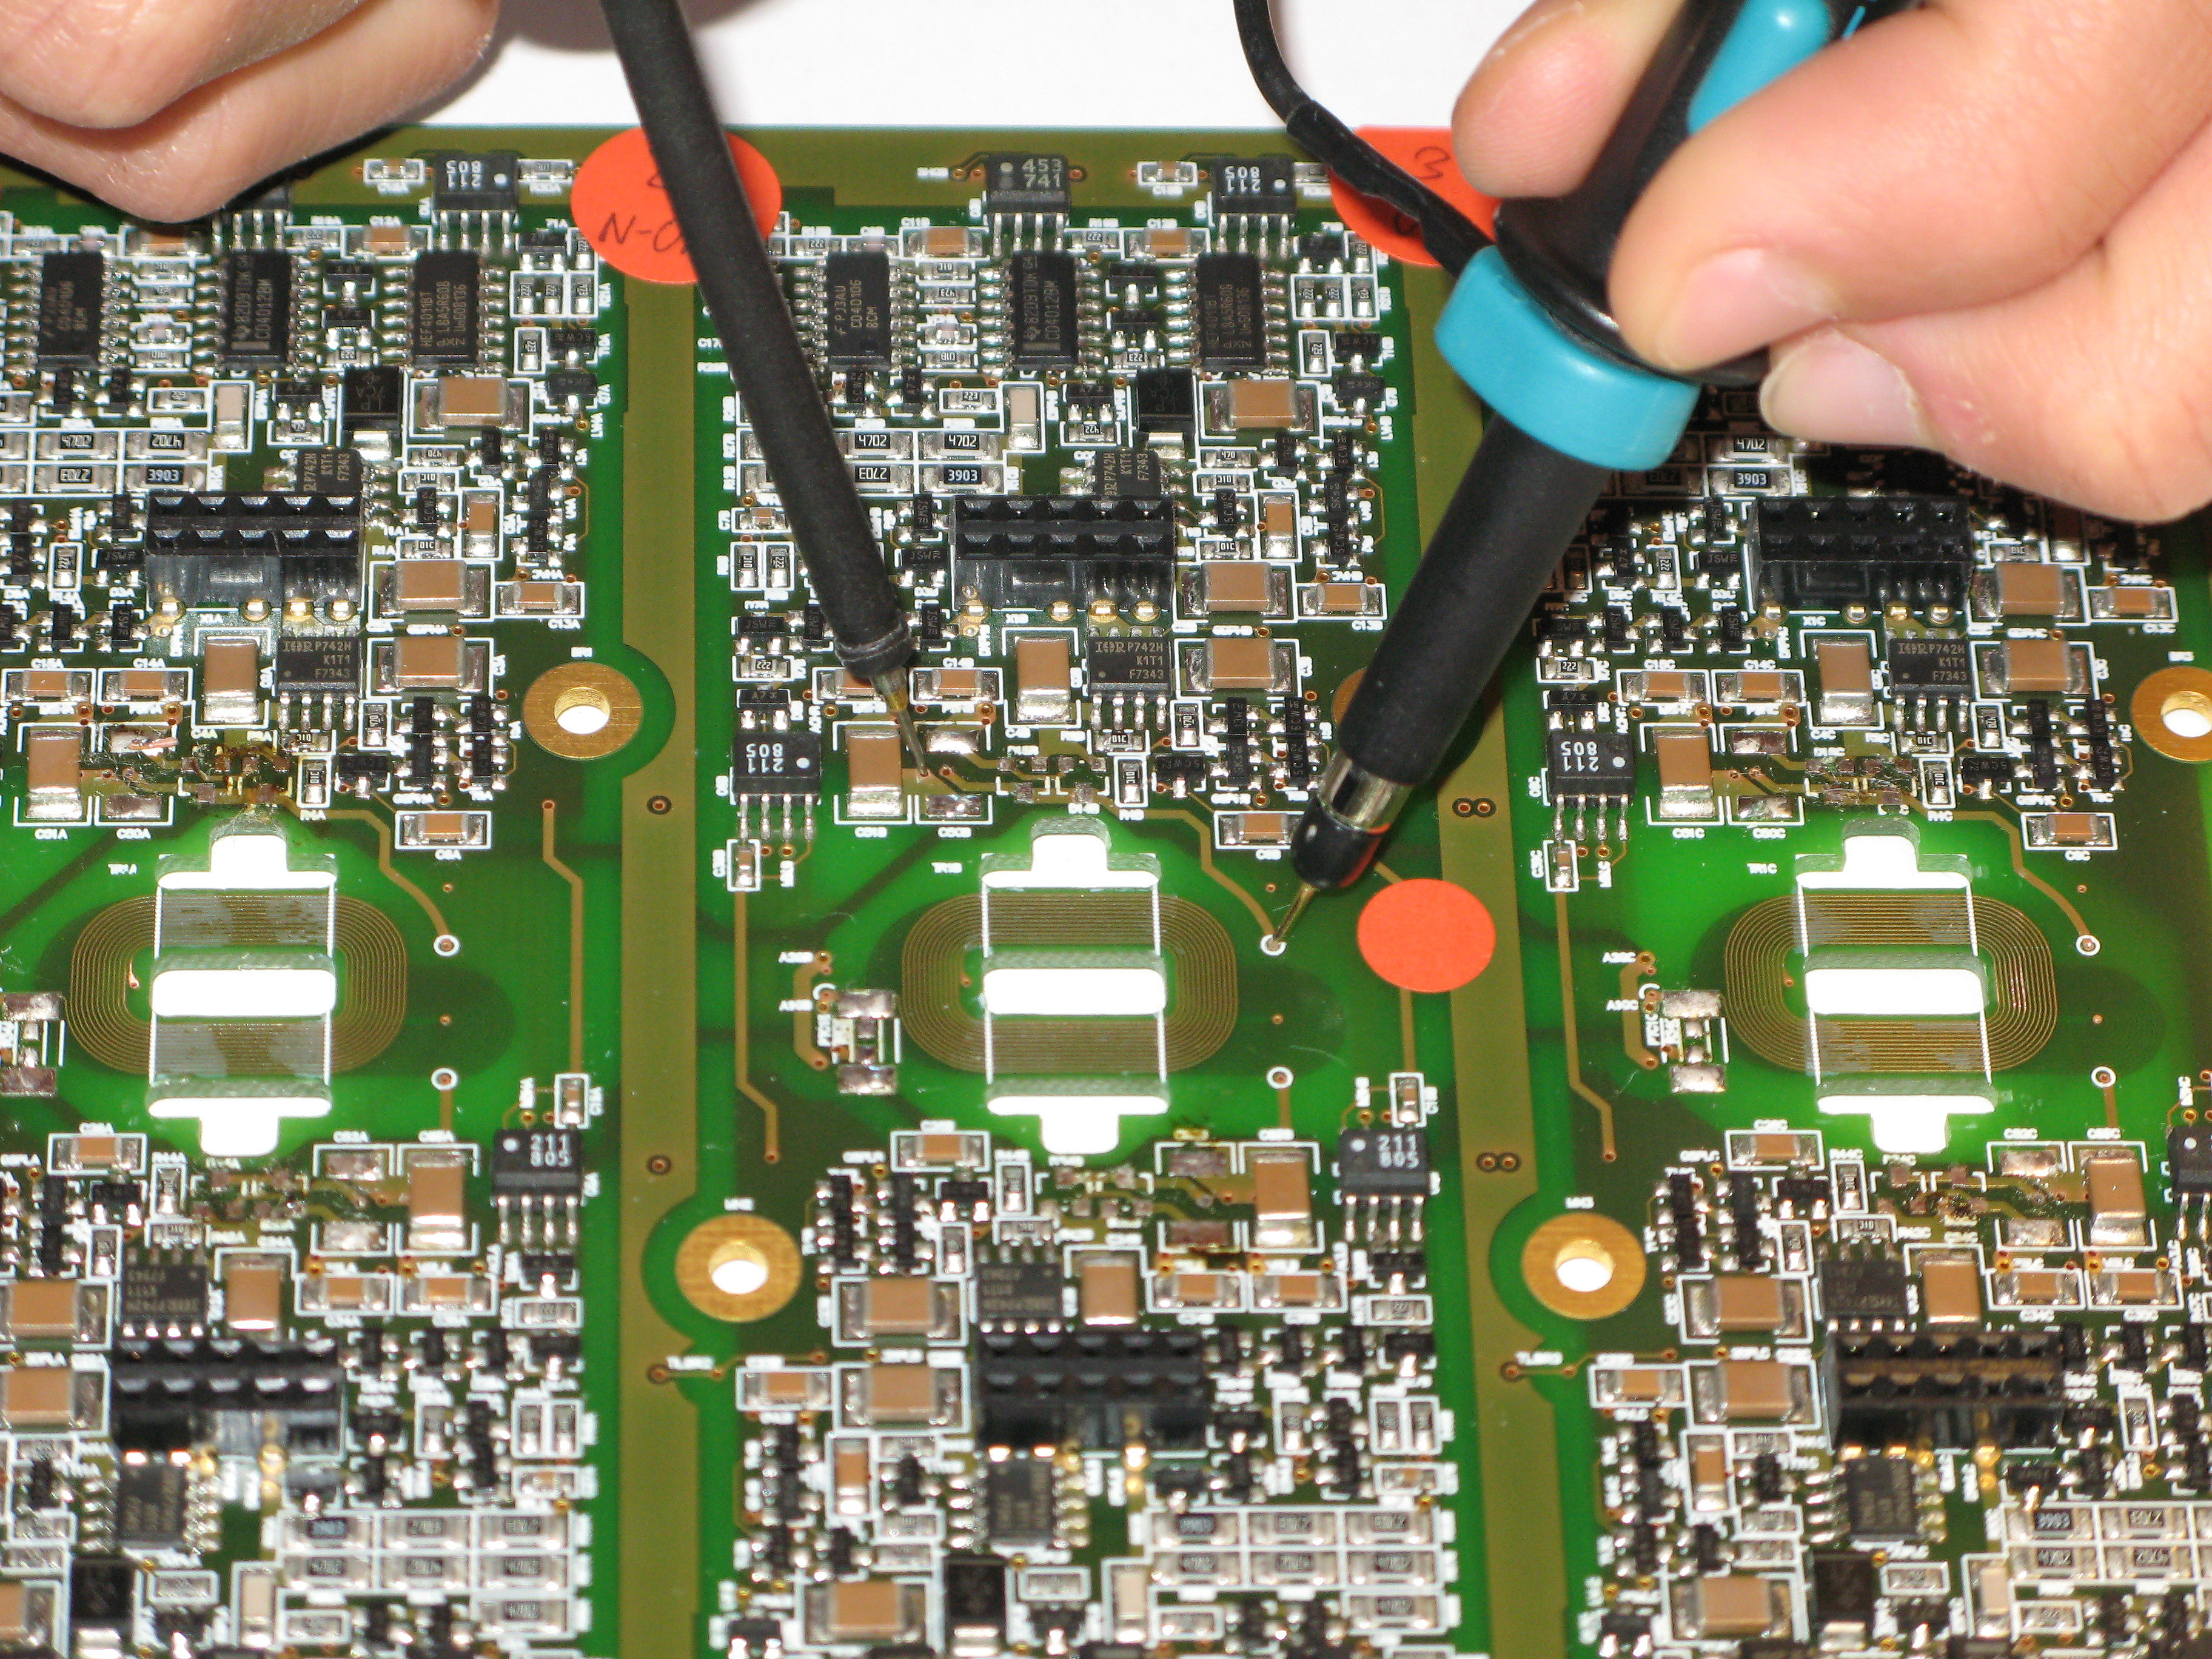 Power Supply Analysis Printed Circuit Board Technology Conceptual Winding Failures In Planar Transformers Are Sometimes Hard To Detect We Show How The Bode 100 Can Be Used